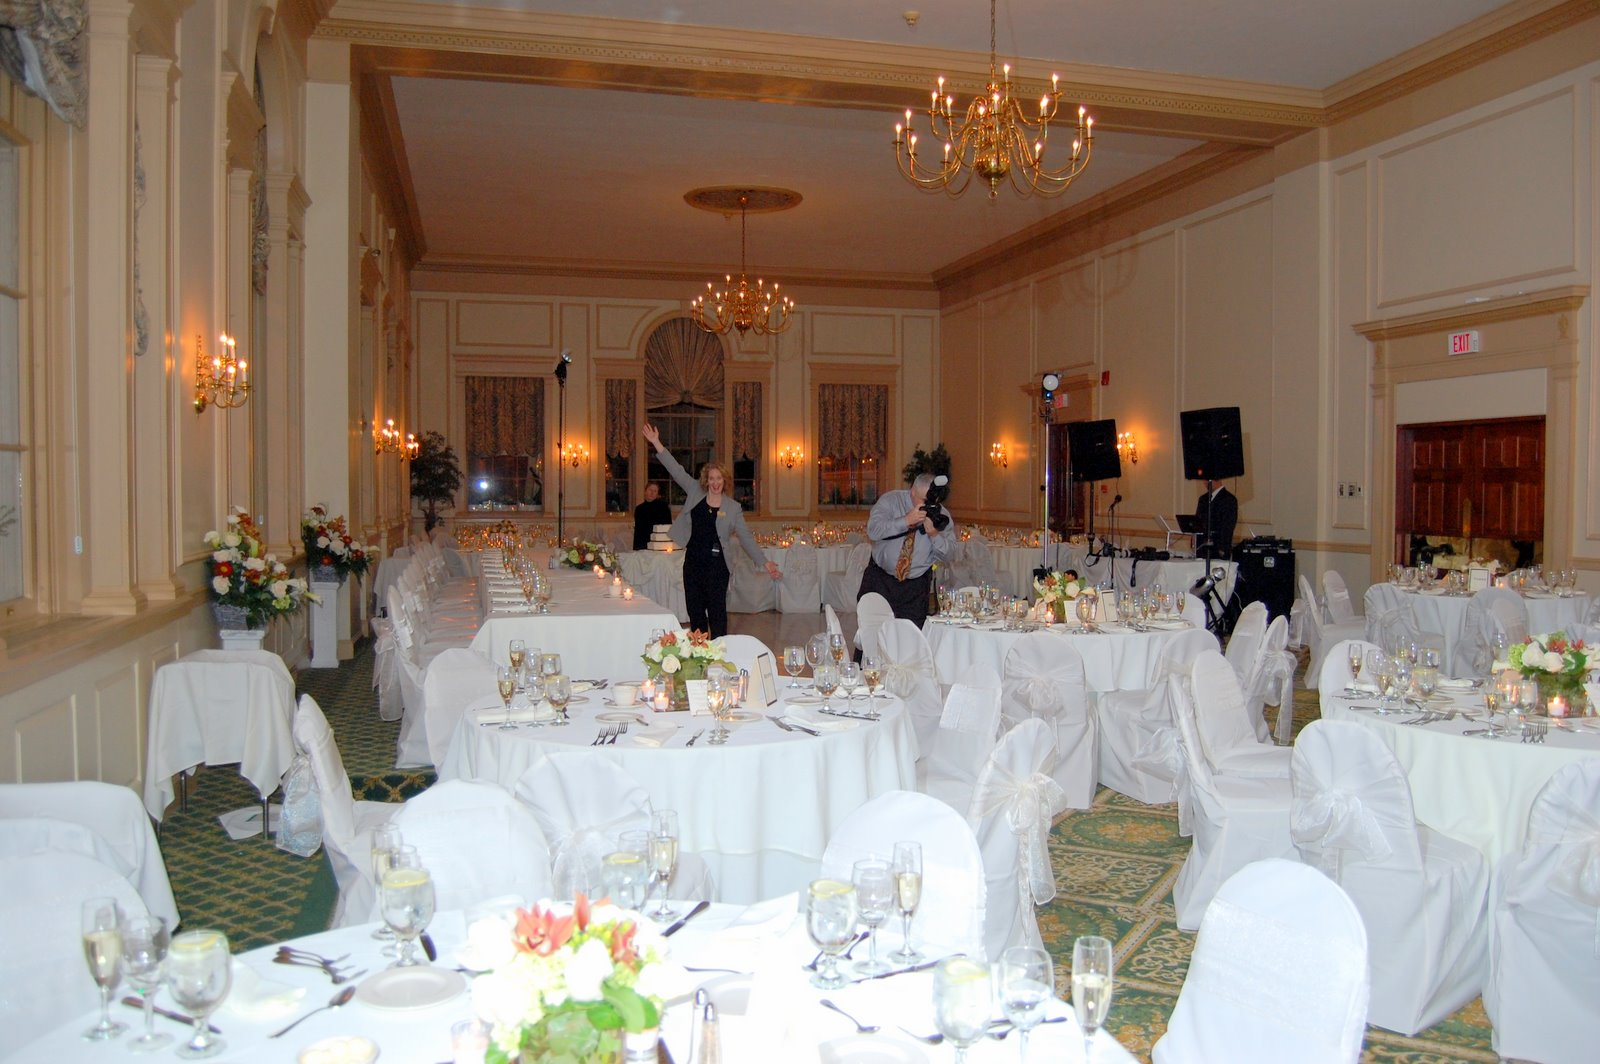 Weddings at the hawthorne hotel a nice wedding for a for Hotel claire meuble nice